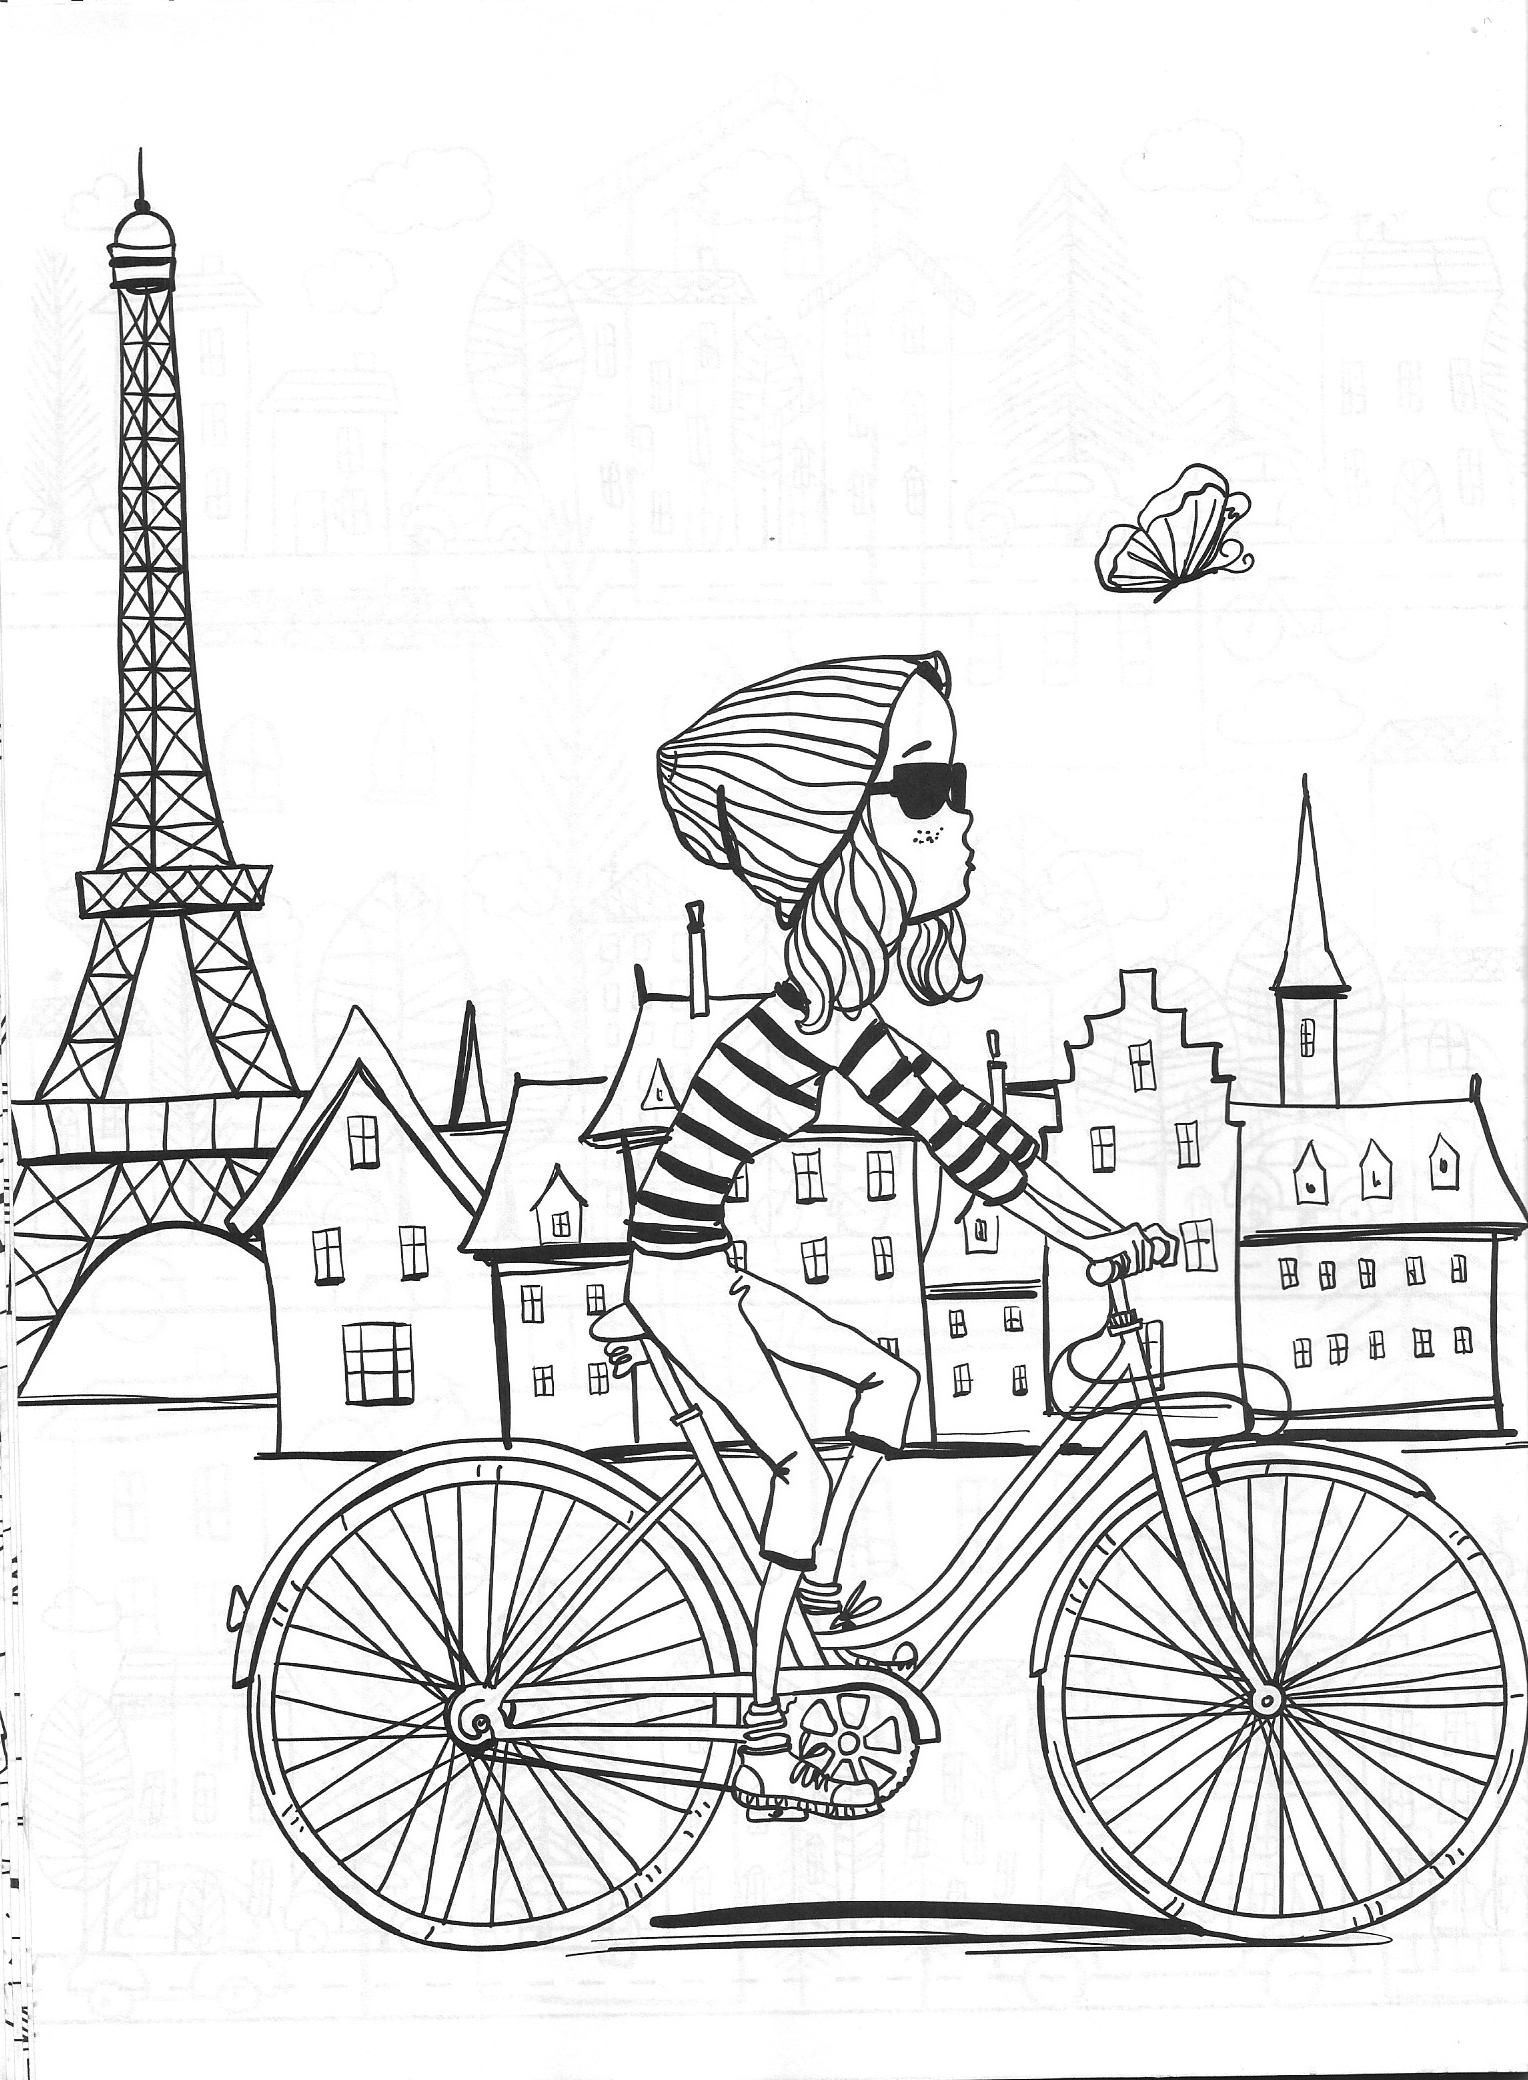 Vida Simples Cidade Dos Sonhos Coloring Books Coloring Pages